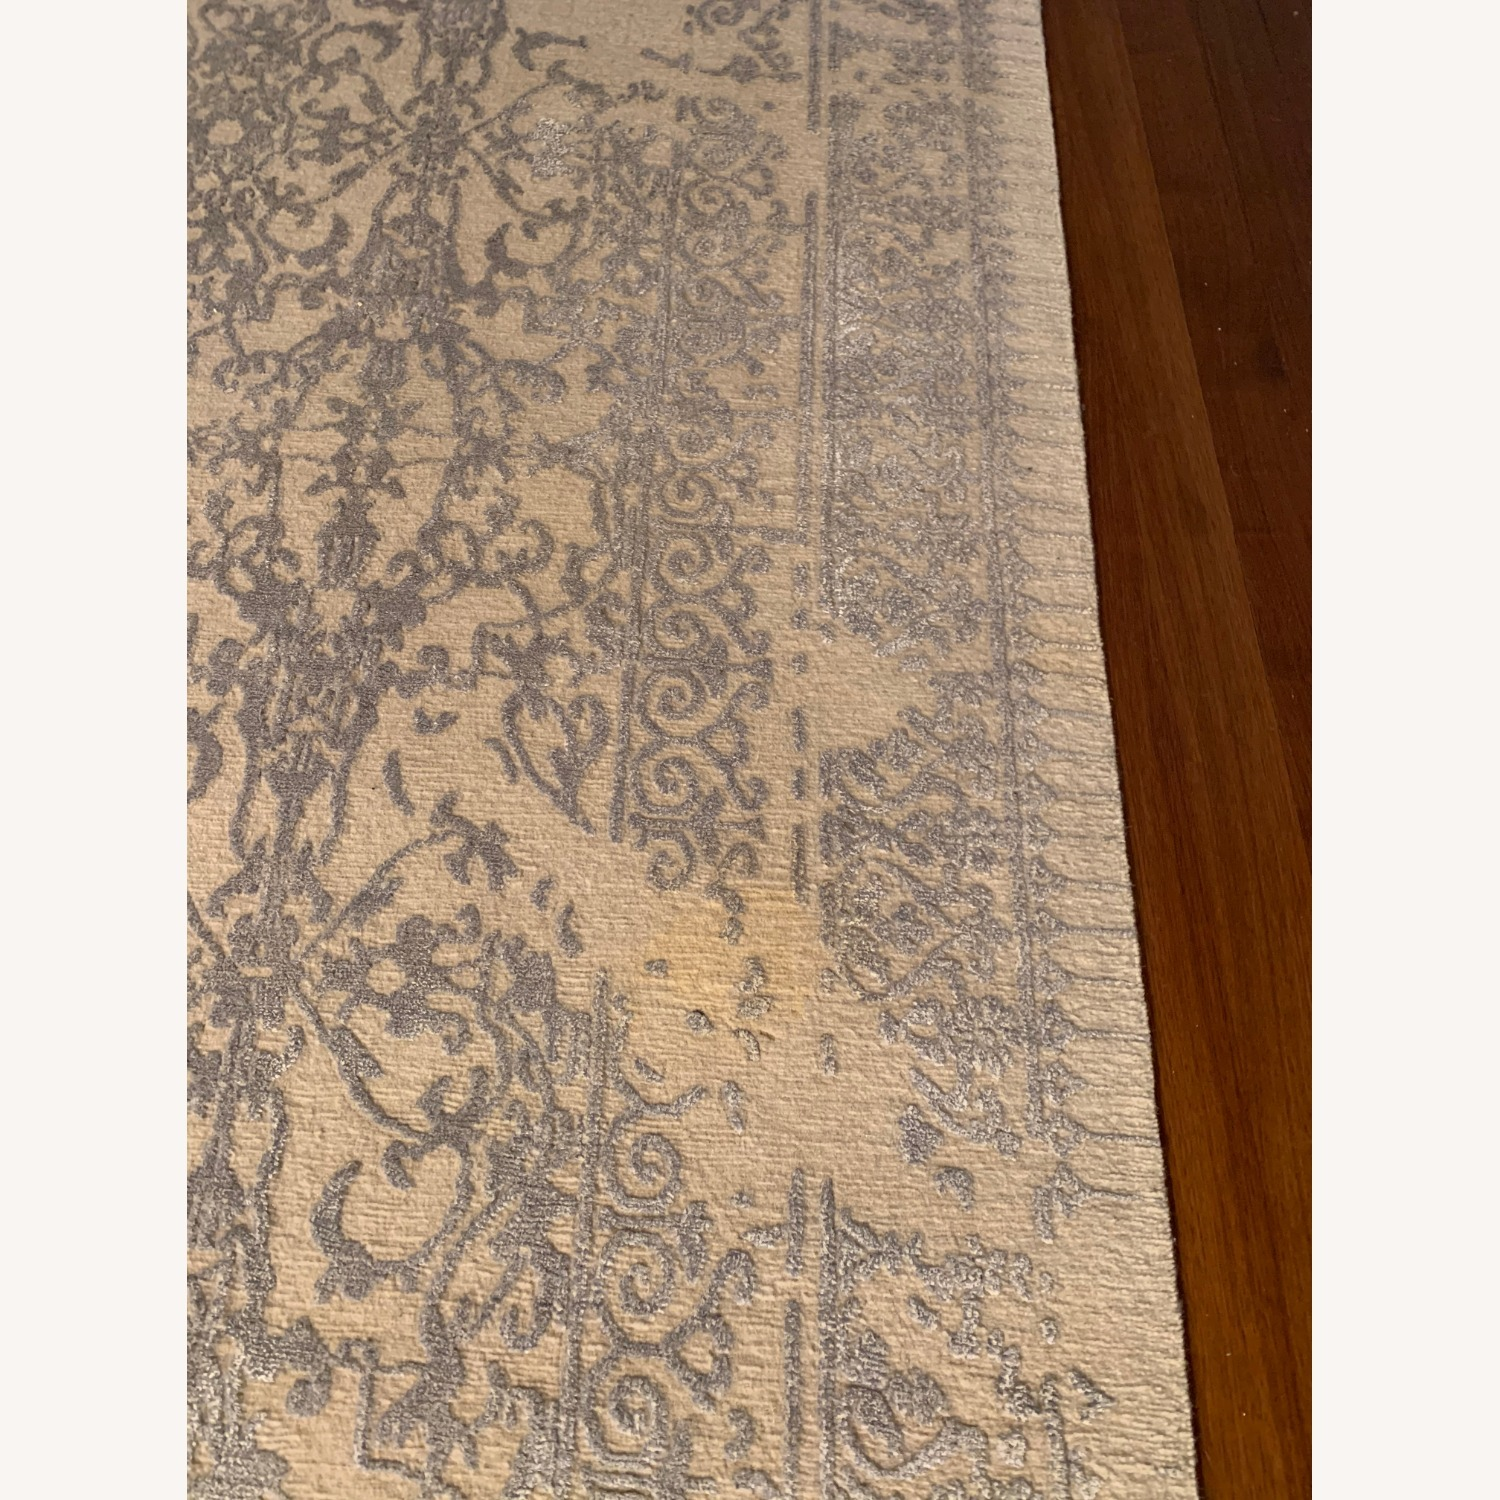 Custom Antique Style Distressed Rug - image-2